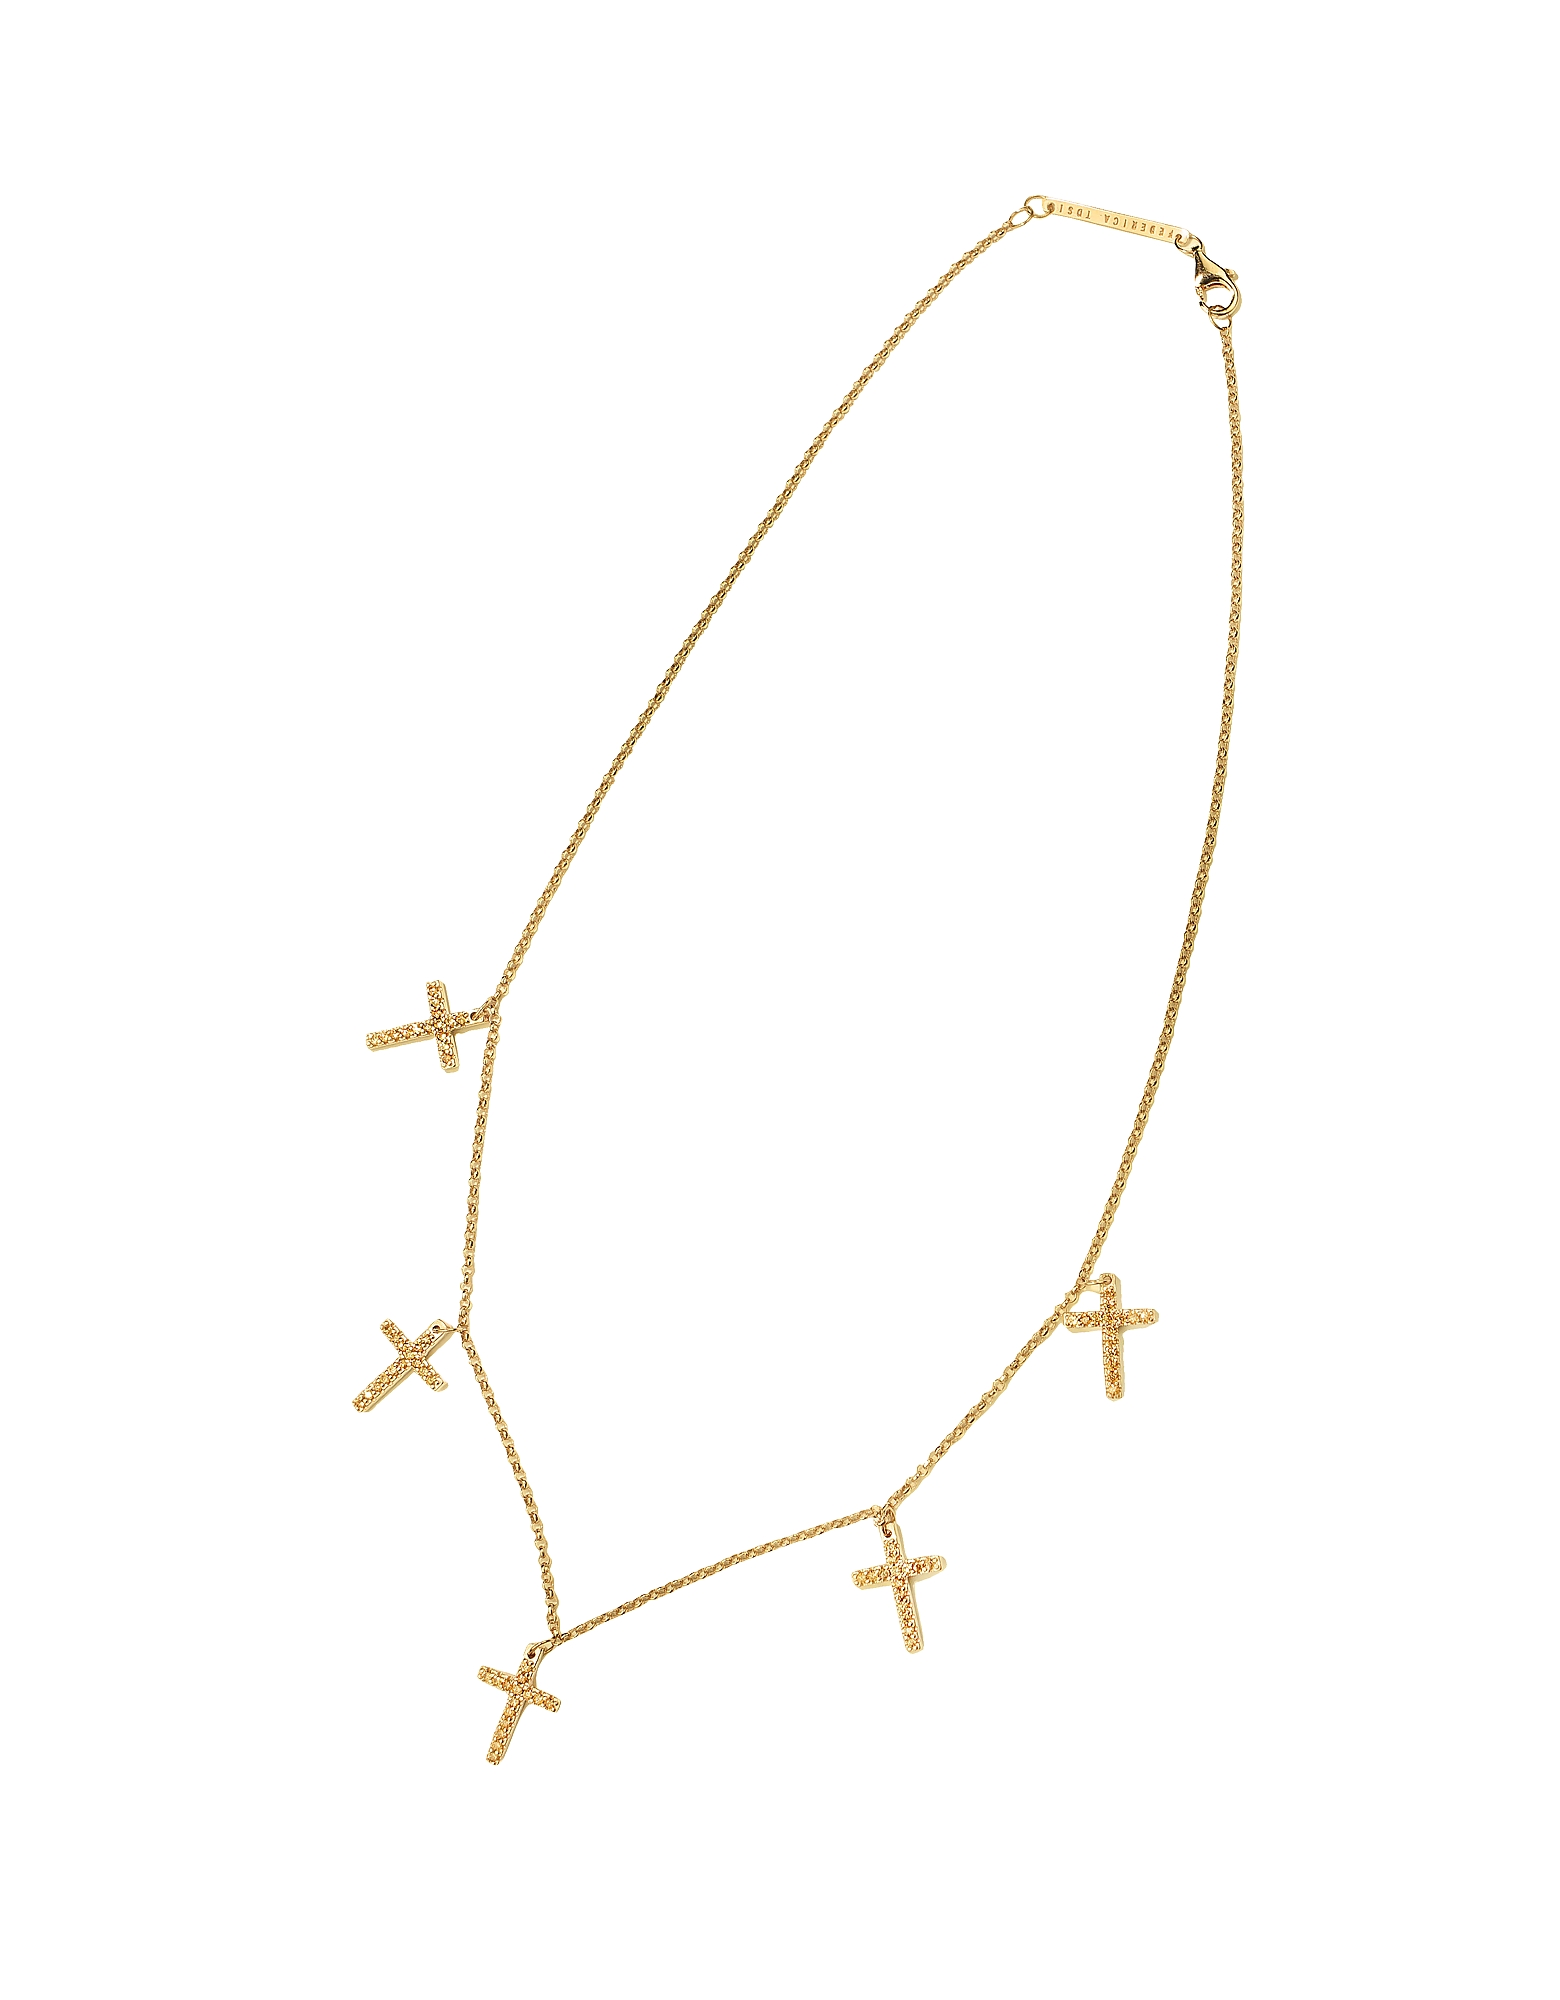 Federica Tosi Necklaces, Lace Faith Mini Necklace